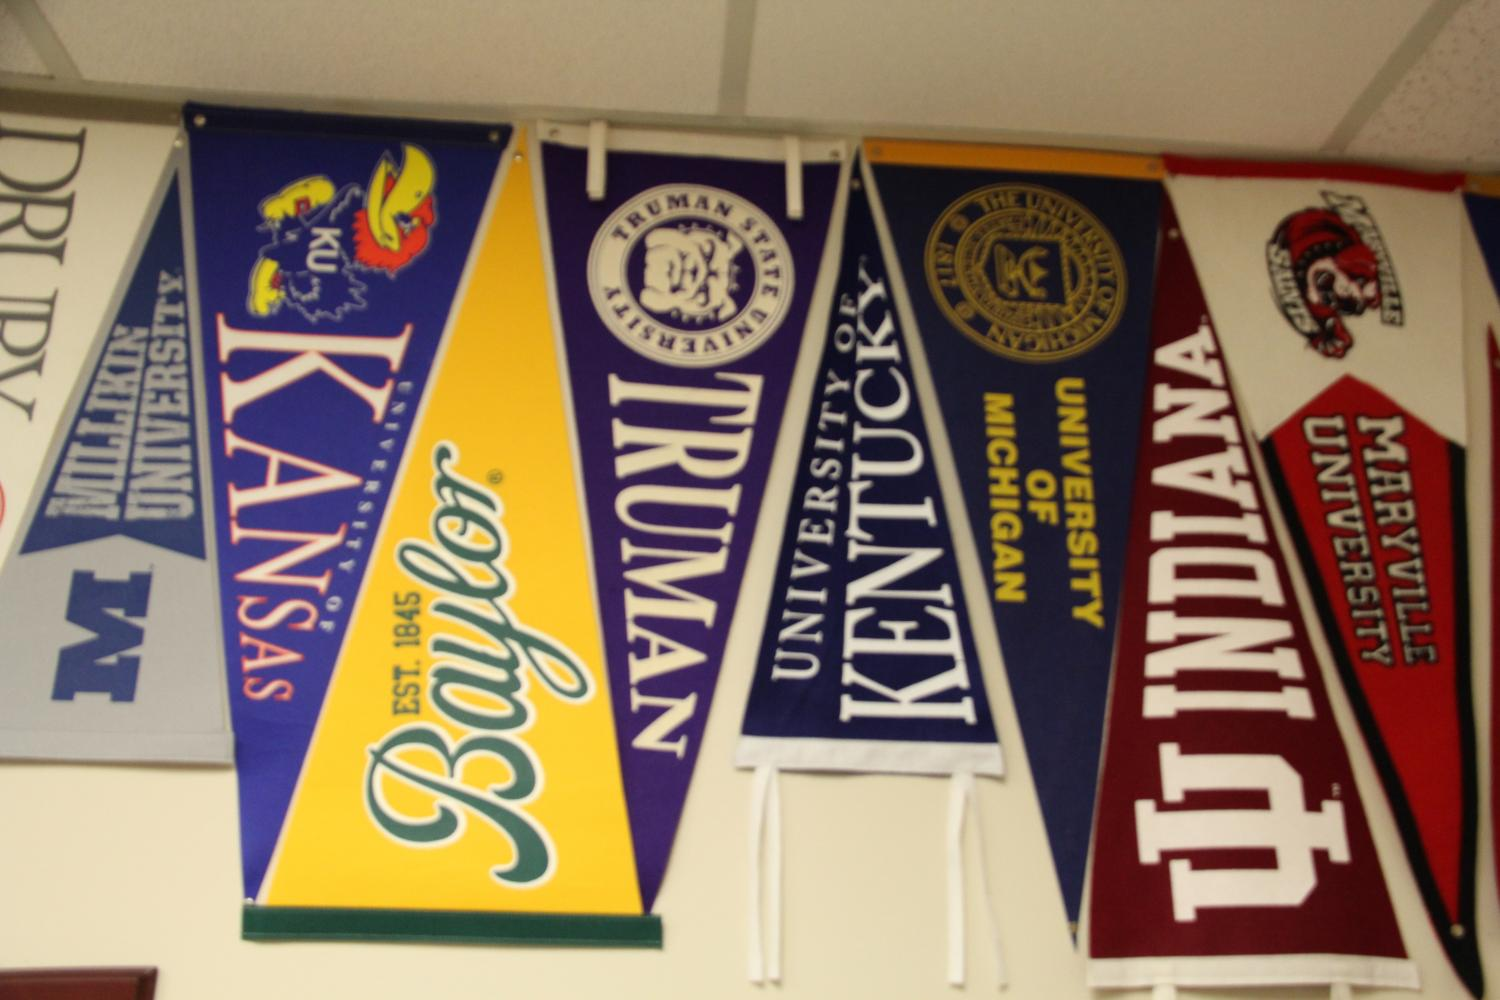 College counselor, Cheryl Egan, represents multiple colleges by putting flags on her office wall.